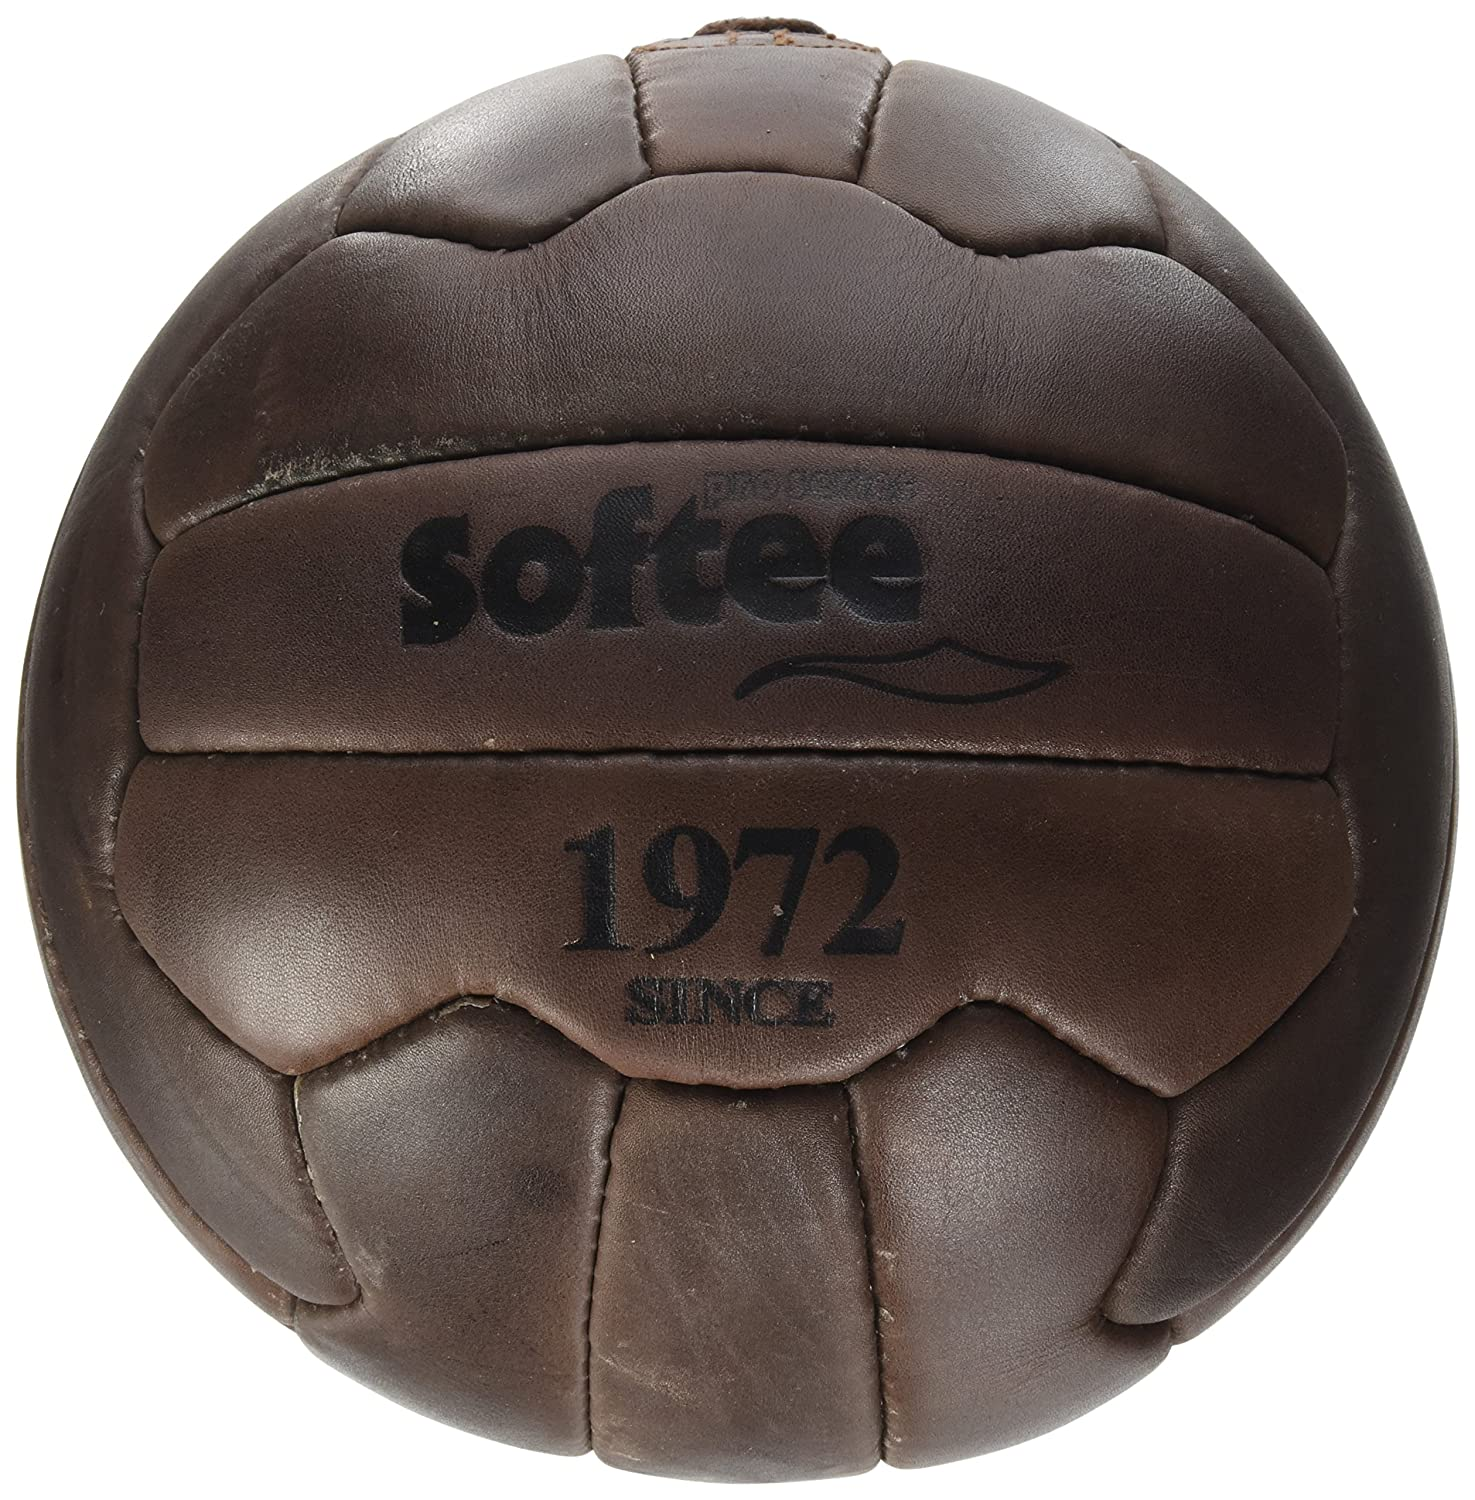 Softee Equipment 0000148 Balón Vintage, Blanco, S: Amazon.es: Deportes y aire libre